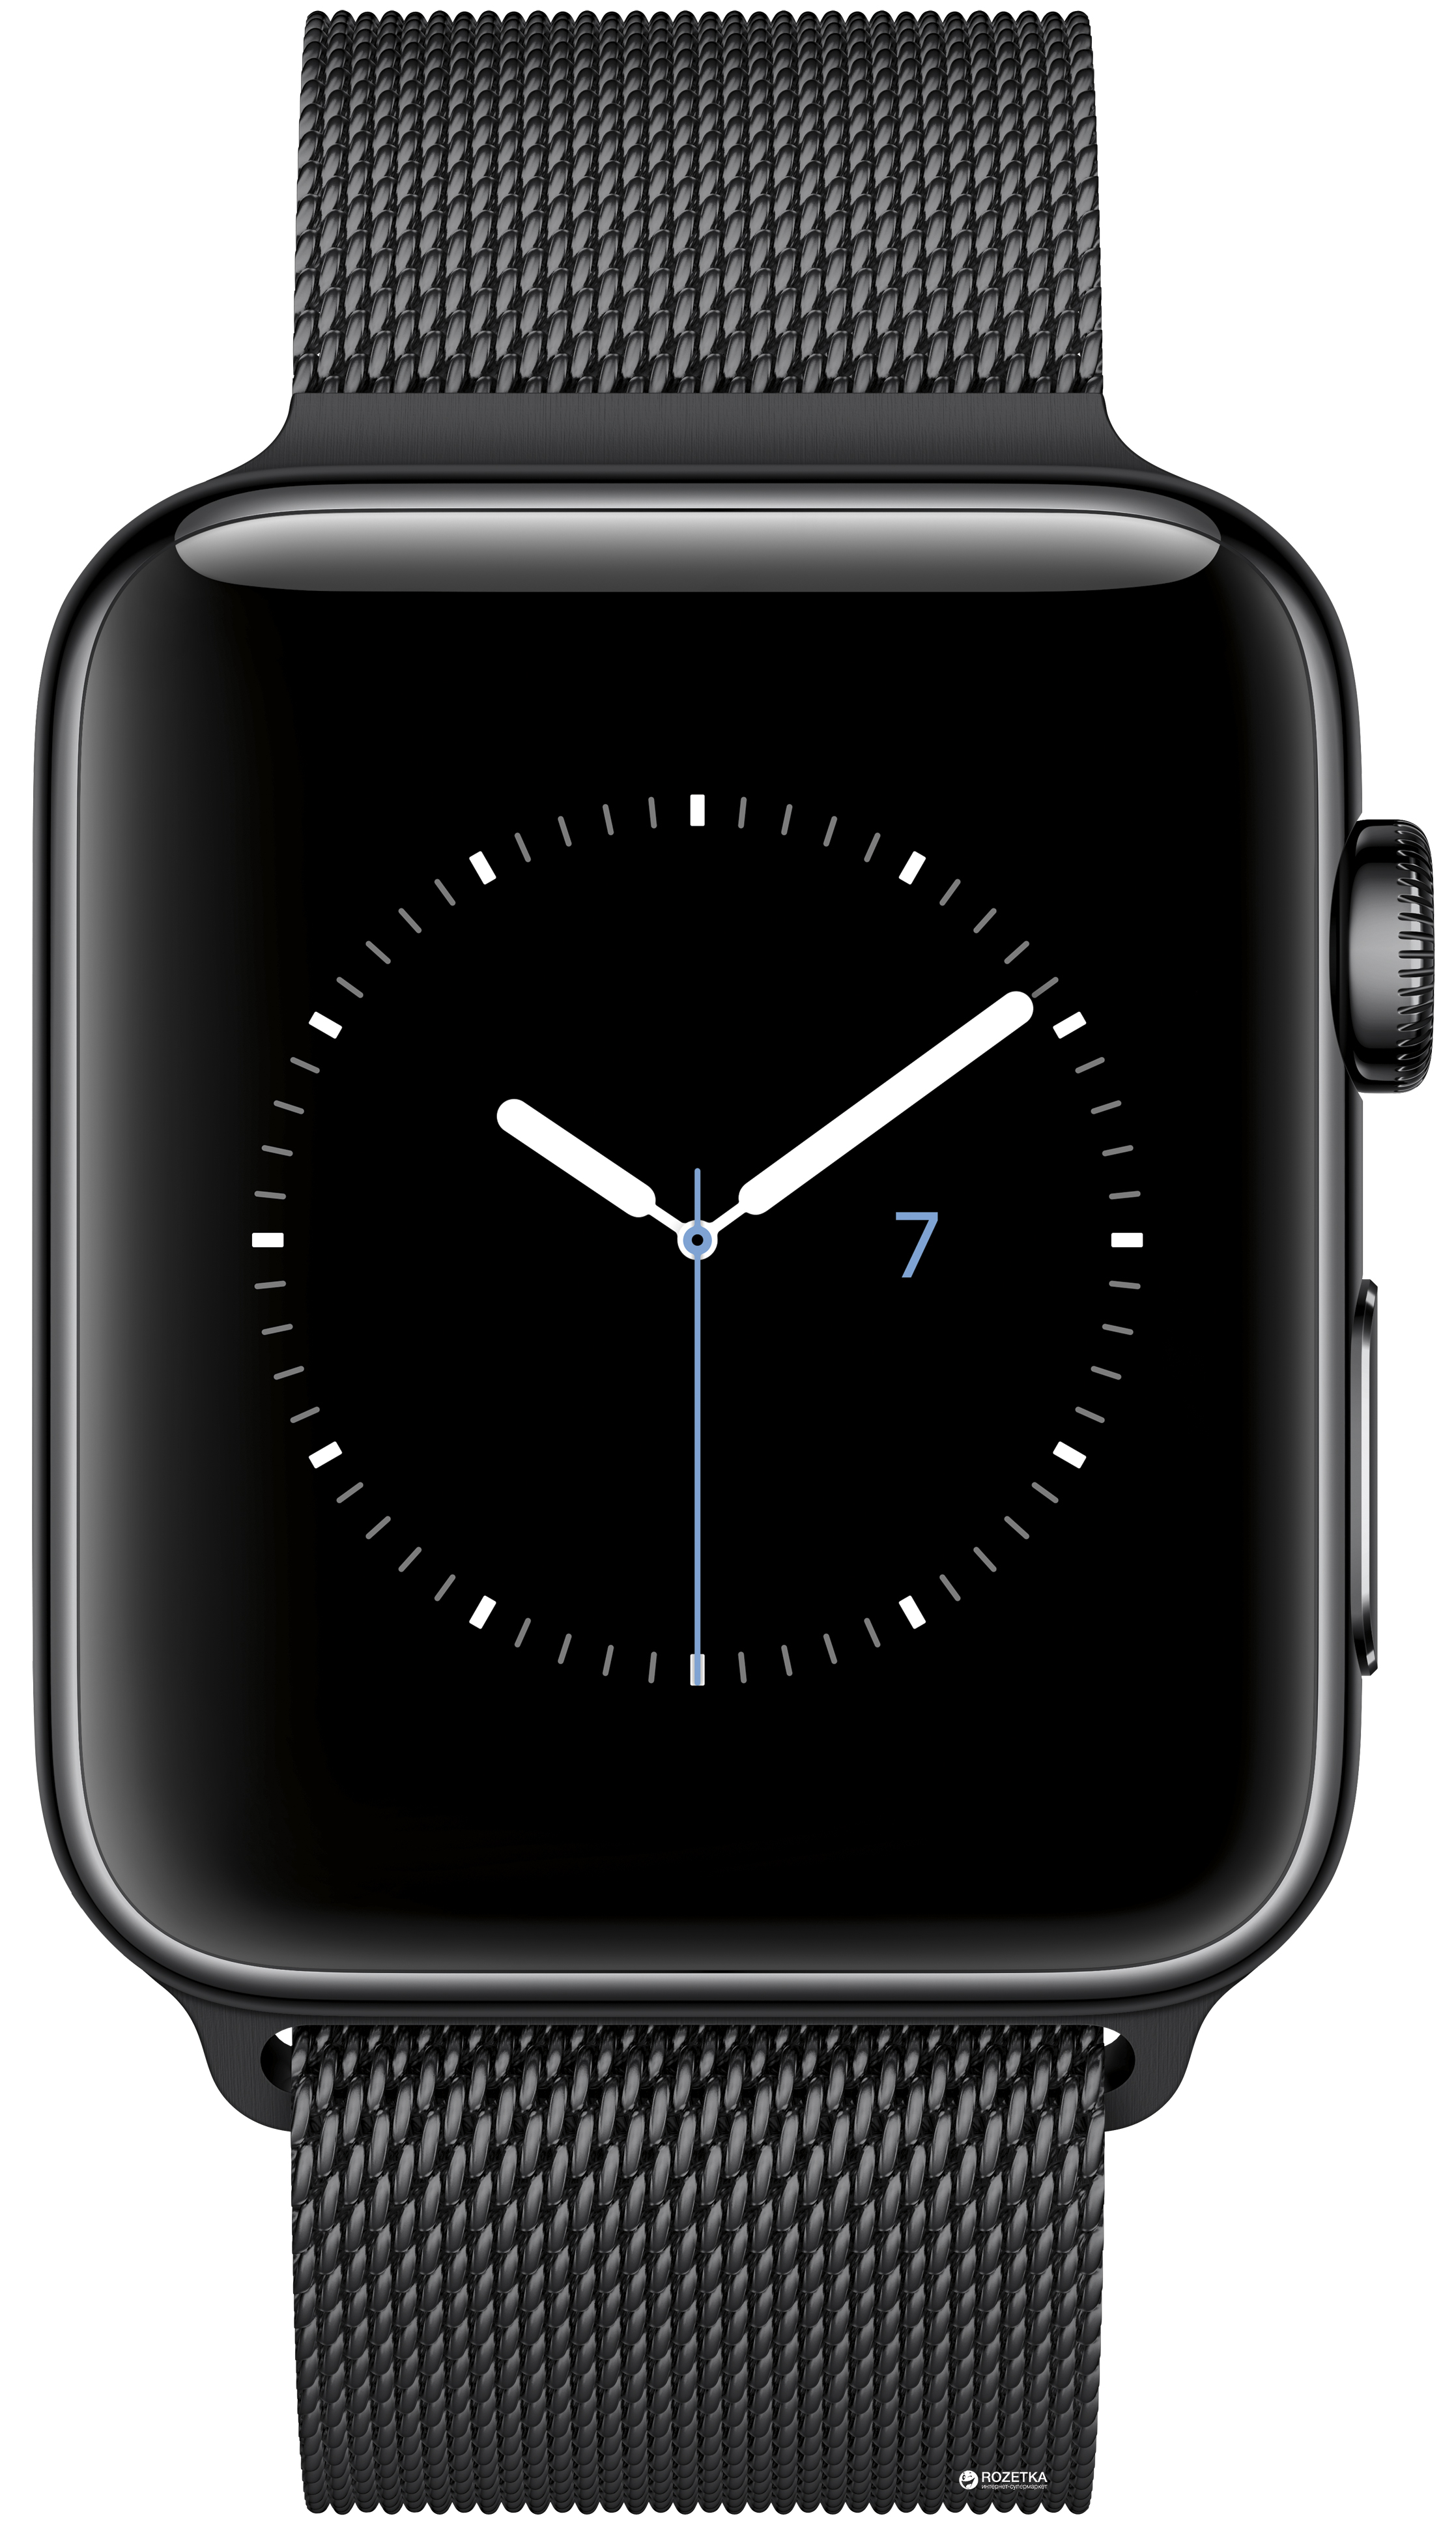 space black stainless steel watch - HD2235×3875